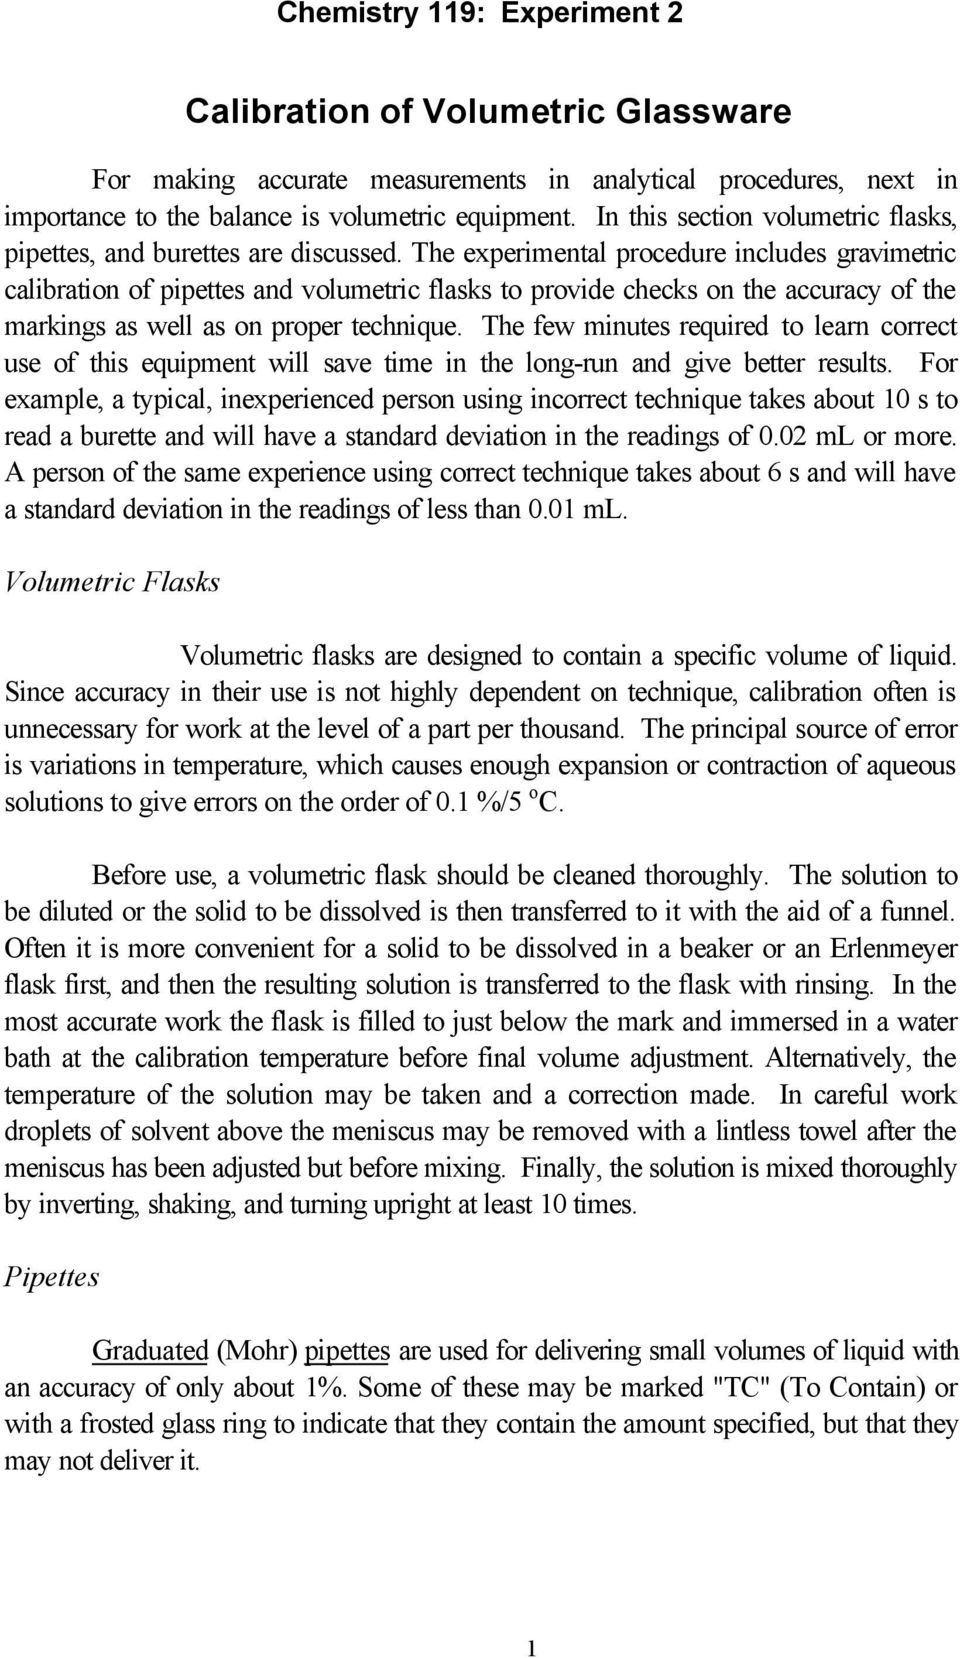 Calibration of Volumetric Glassware - PDF